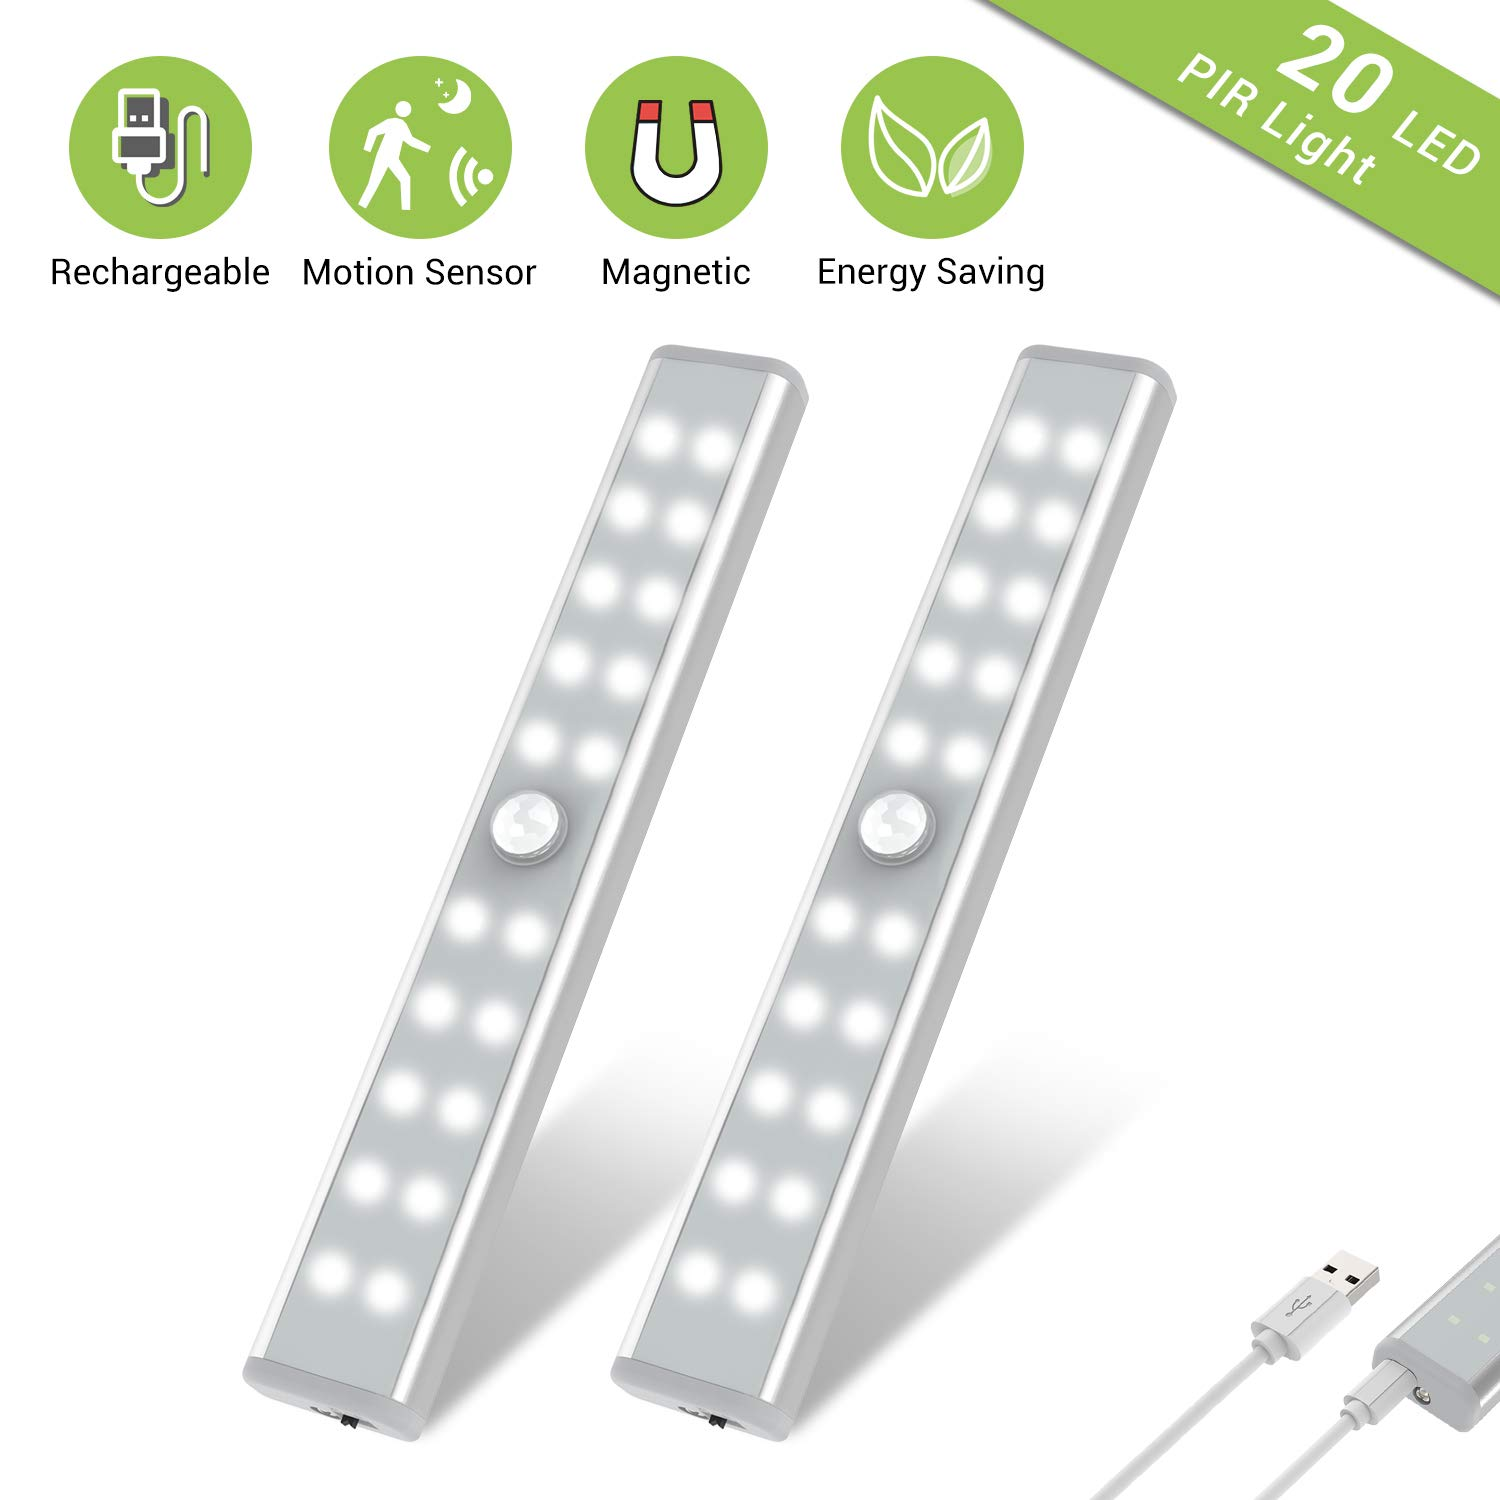 Wardrobe Light, OxyLED Motion Sensor Closet Lights, 20 LED Under Cabinet Lights, USB Rechargeable Stick-on Stairs Step Light Bar, LED Night Light, Safe Light with Magnetic Strip, 2-pack, T-02U by OxyLED